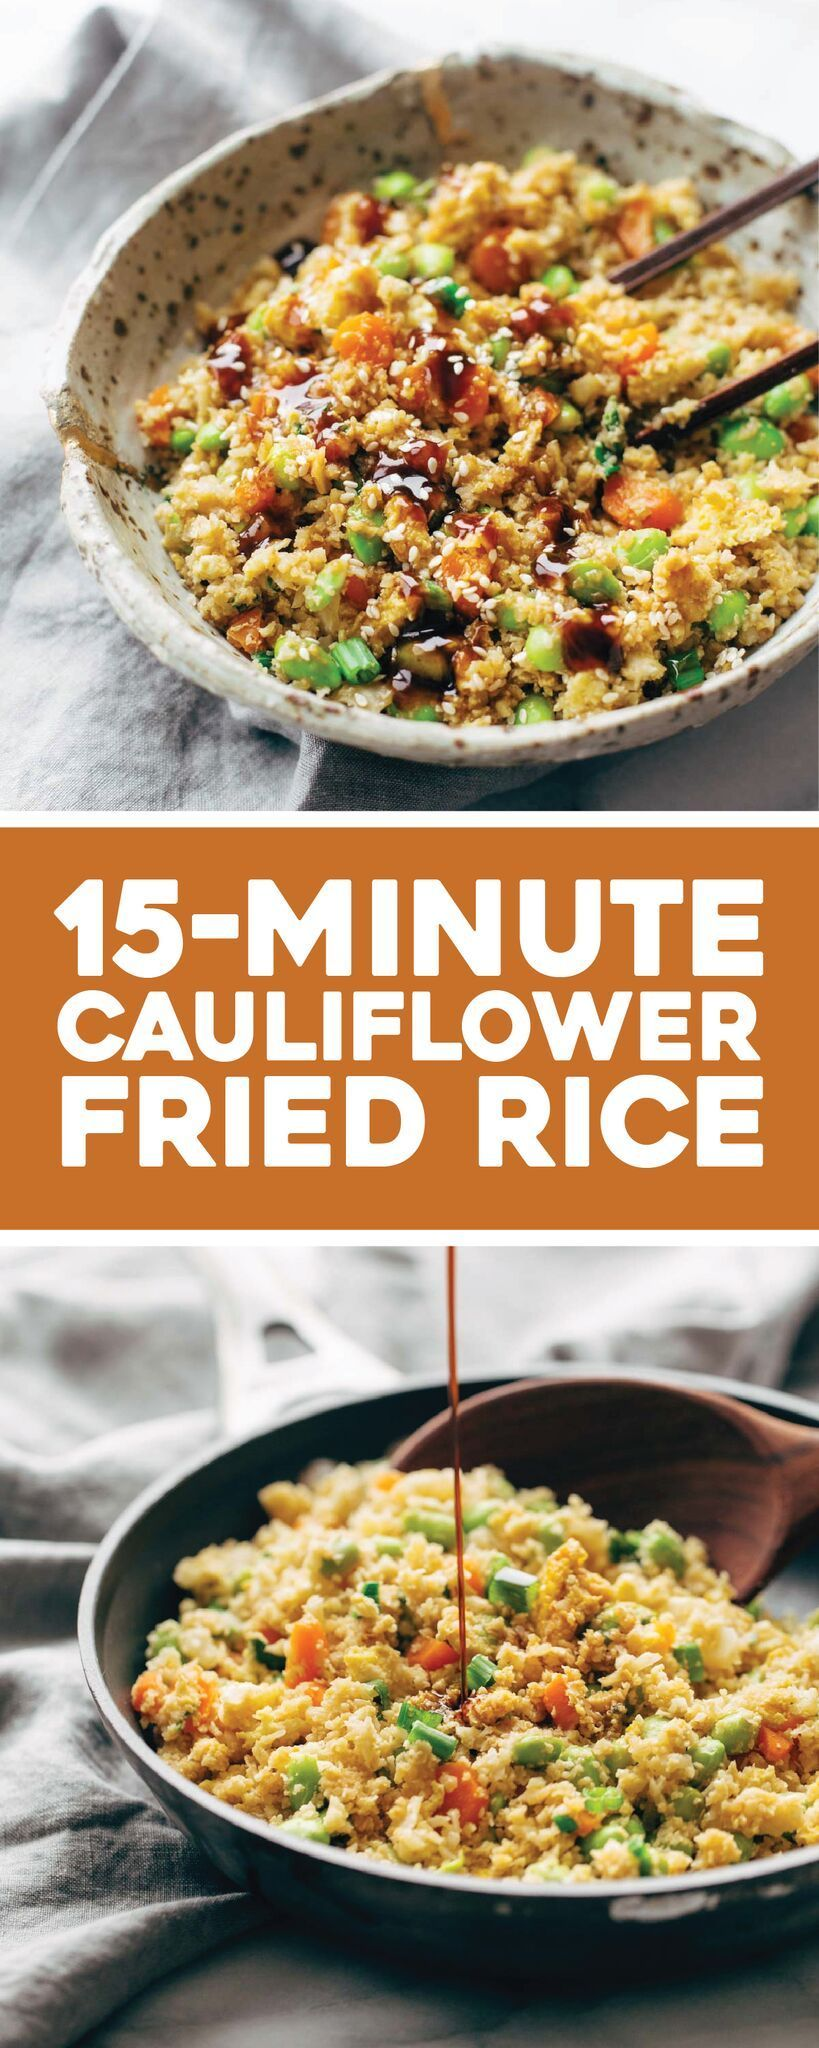 15 Minute Cauliflower Fried Rice - Pinch of Yum #cauliflowerfriedrice